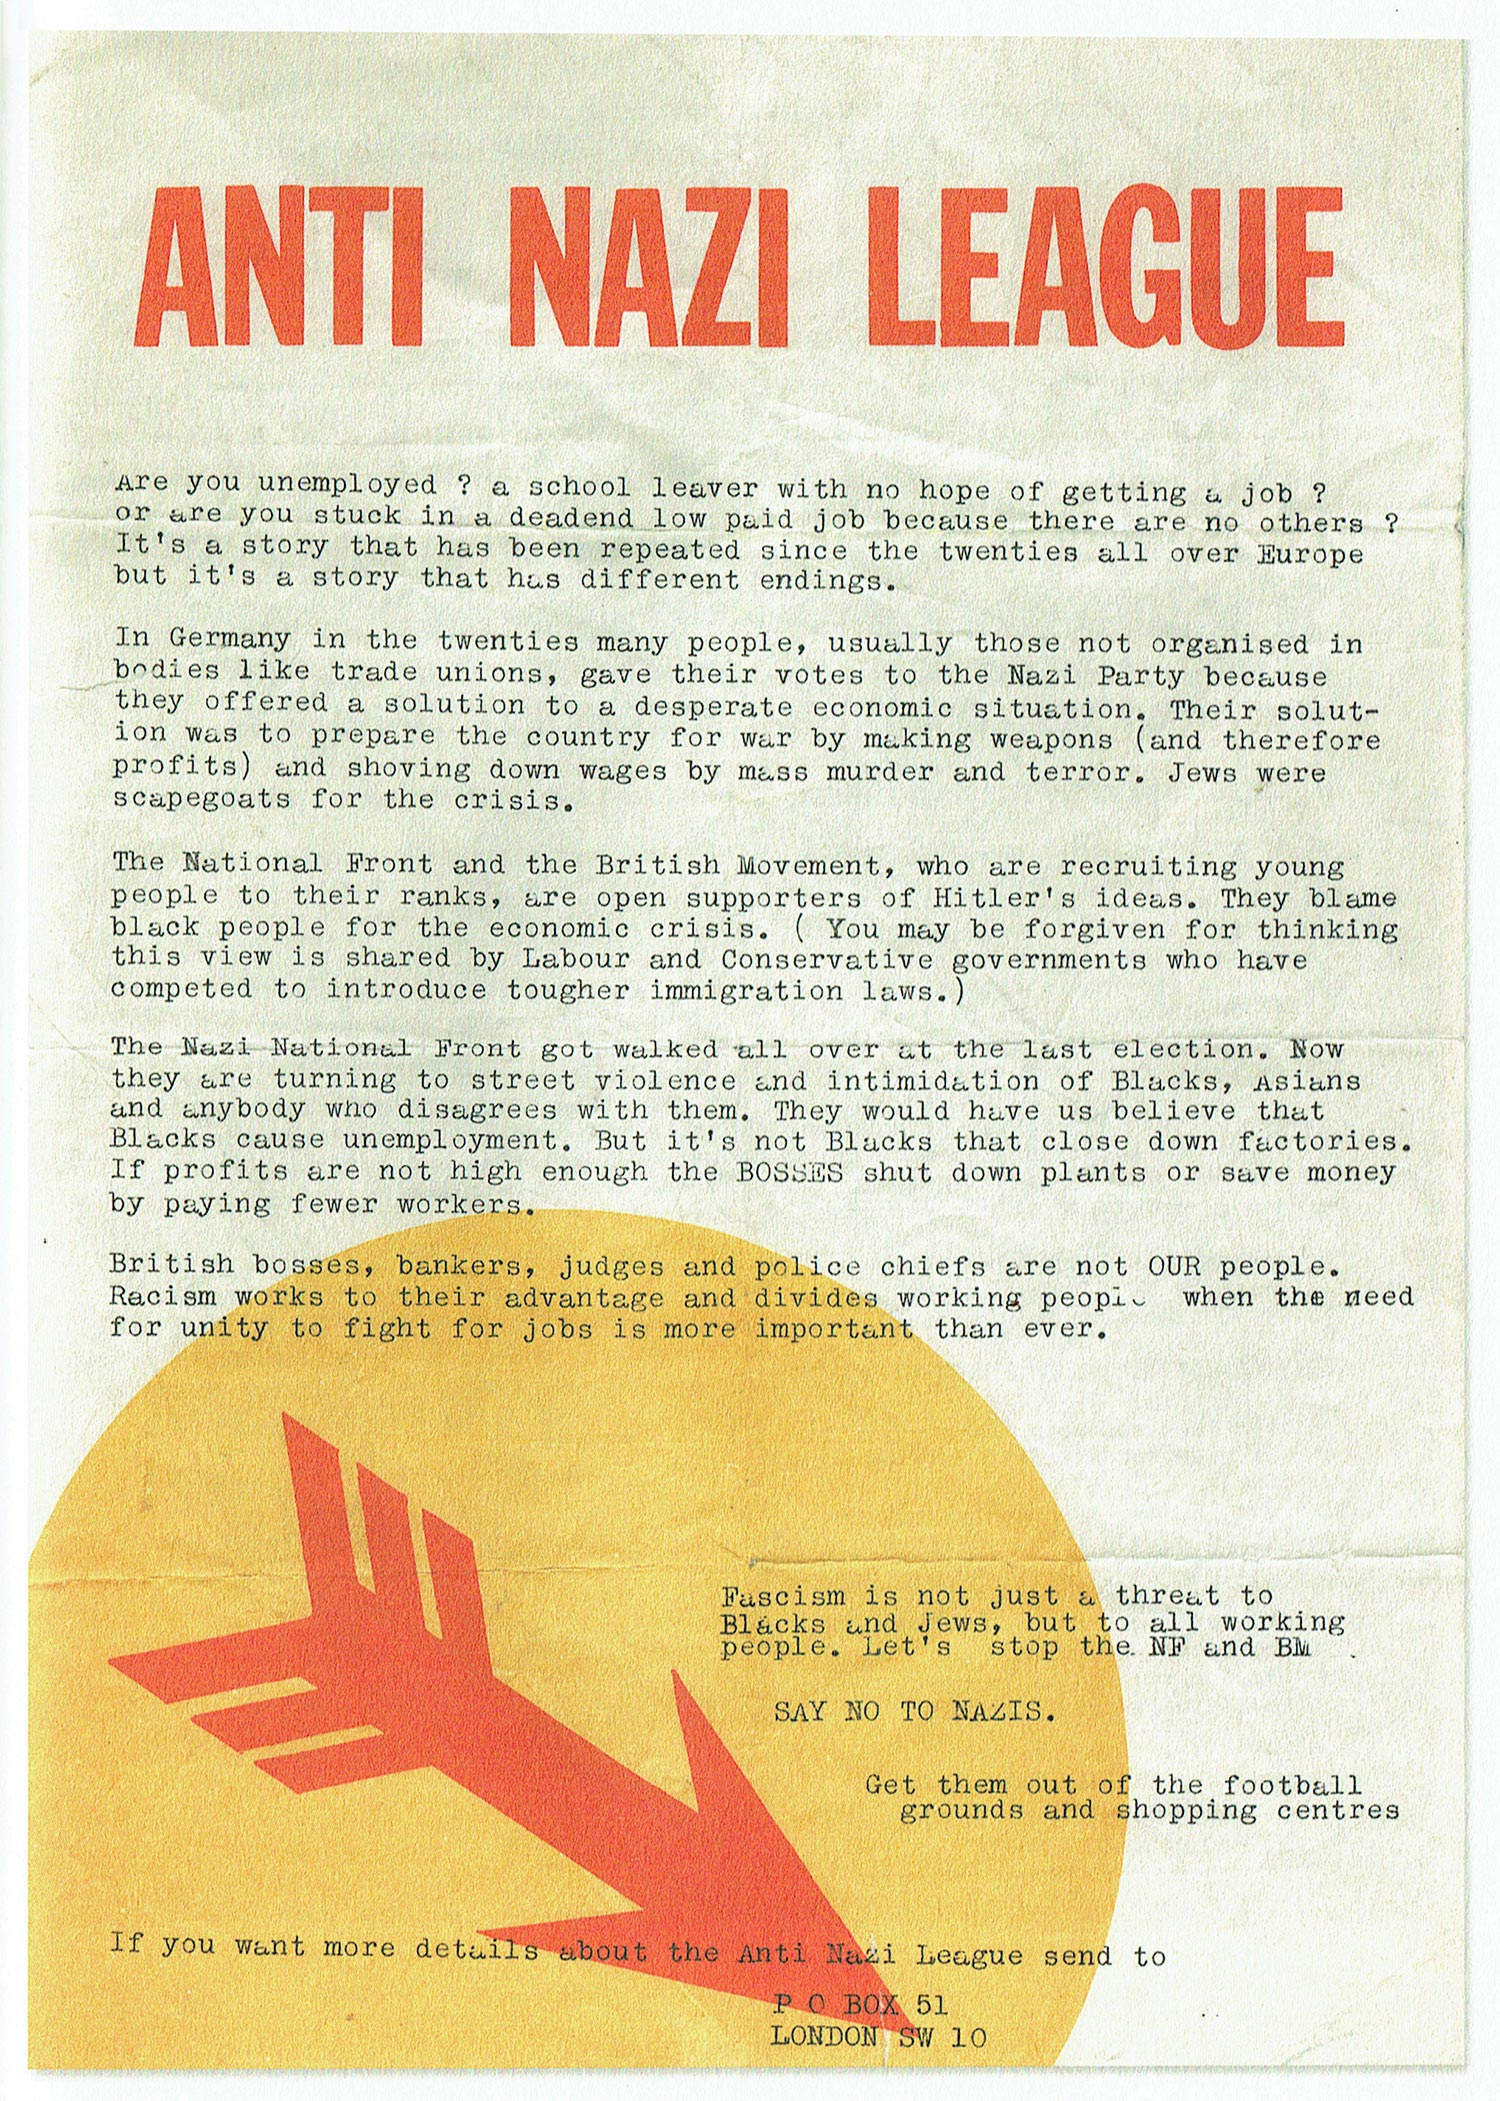 Anti-Nazi League, 1970s